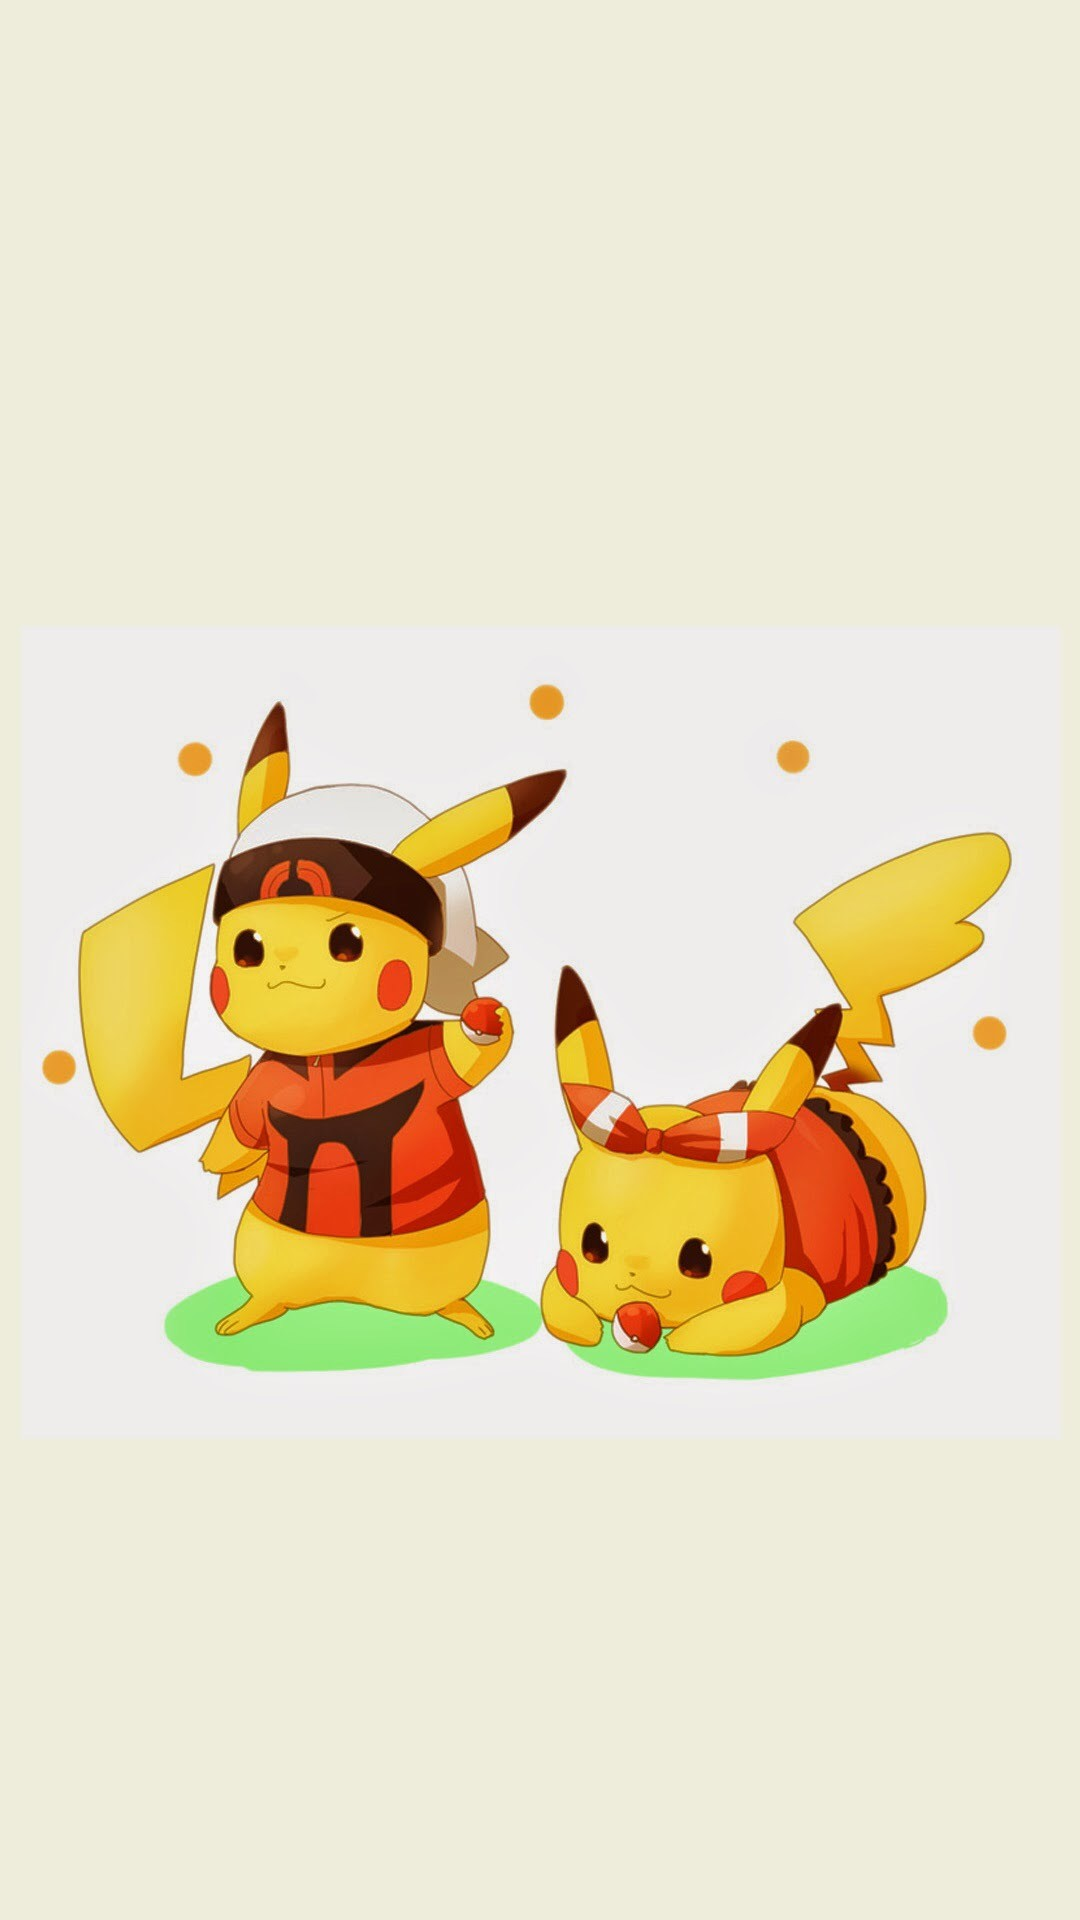 1080x1920 Tap-image-for-more-iPhone-Plus-Pikachu-Pikachu-